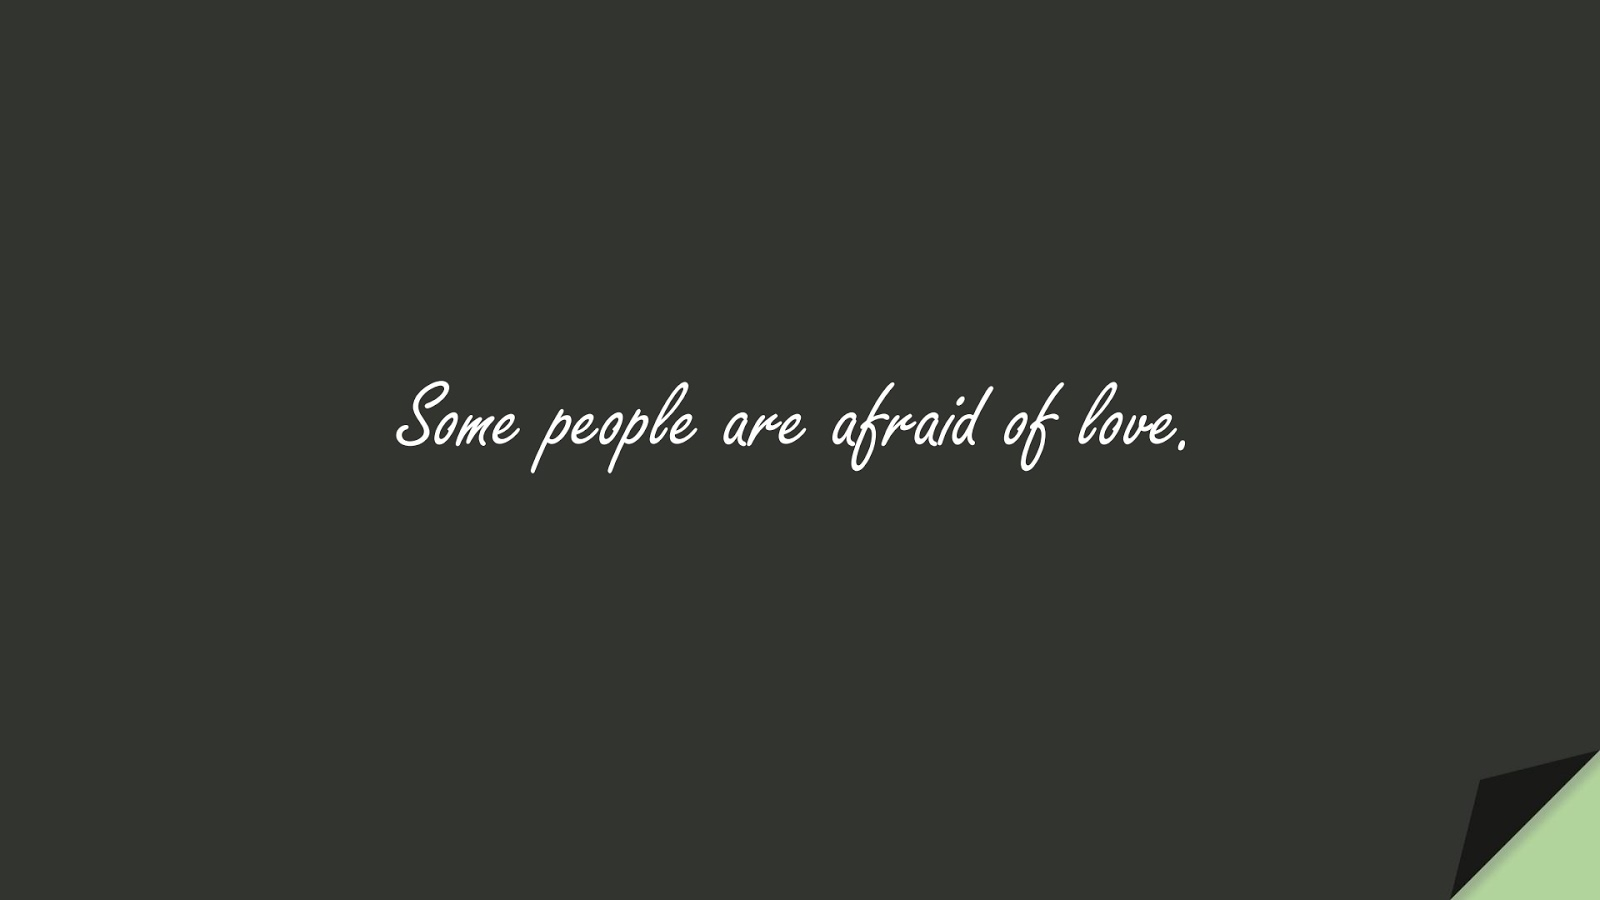 Some people are afraid of love.FALSE